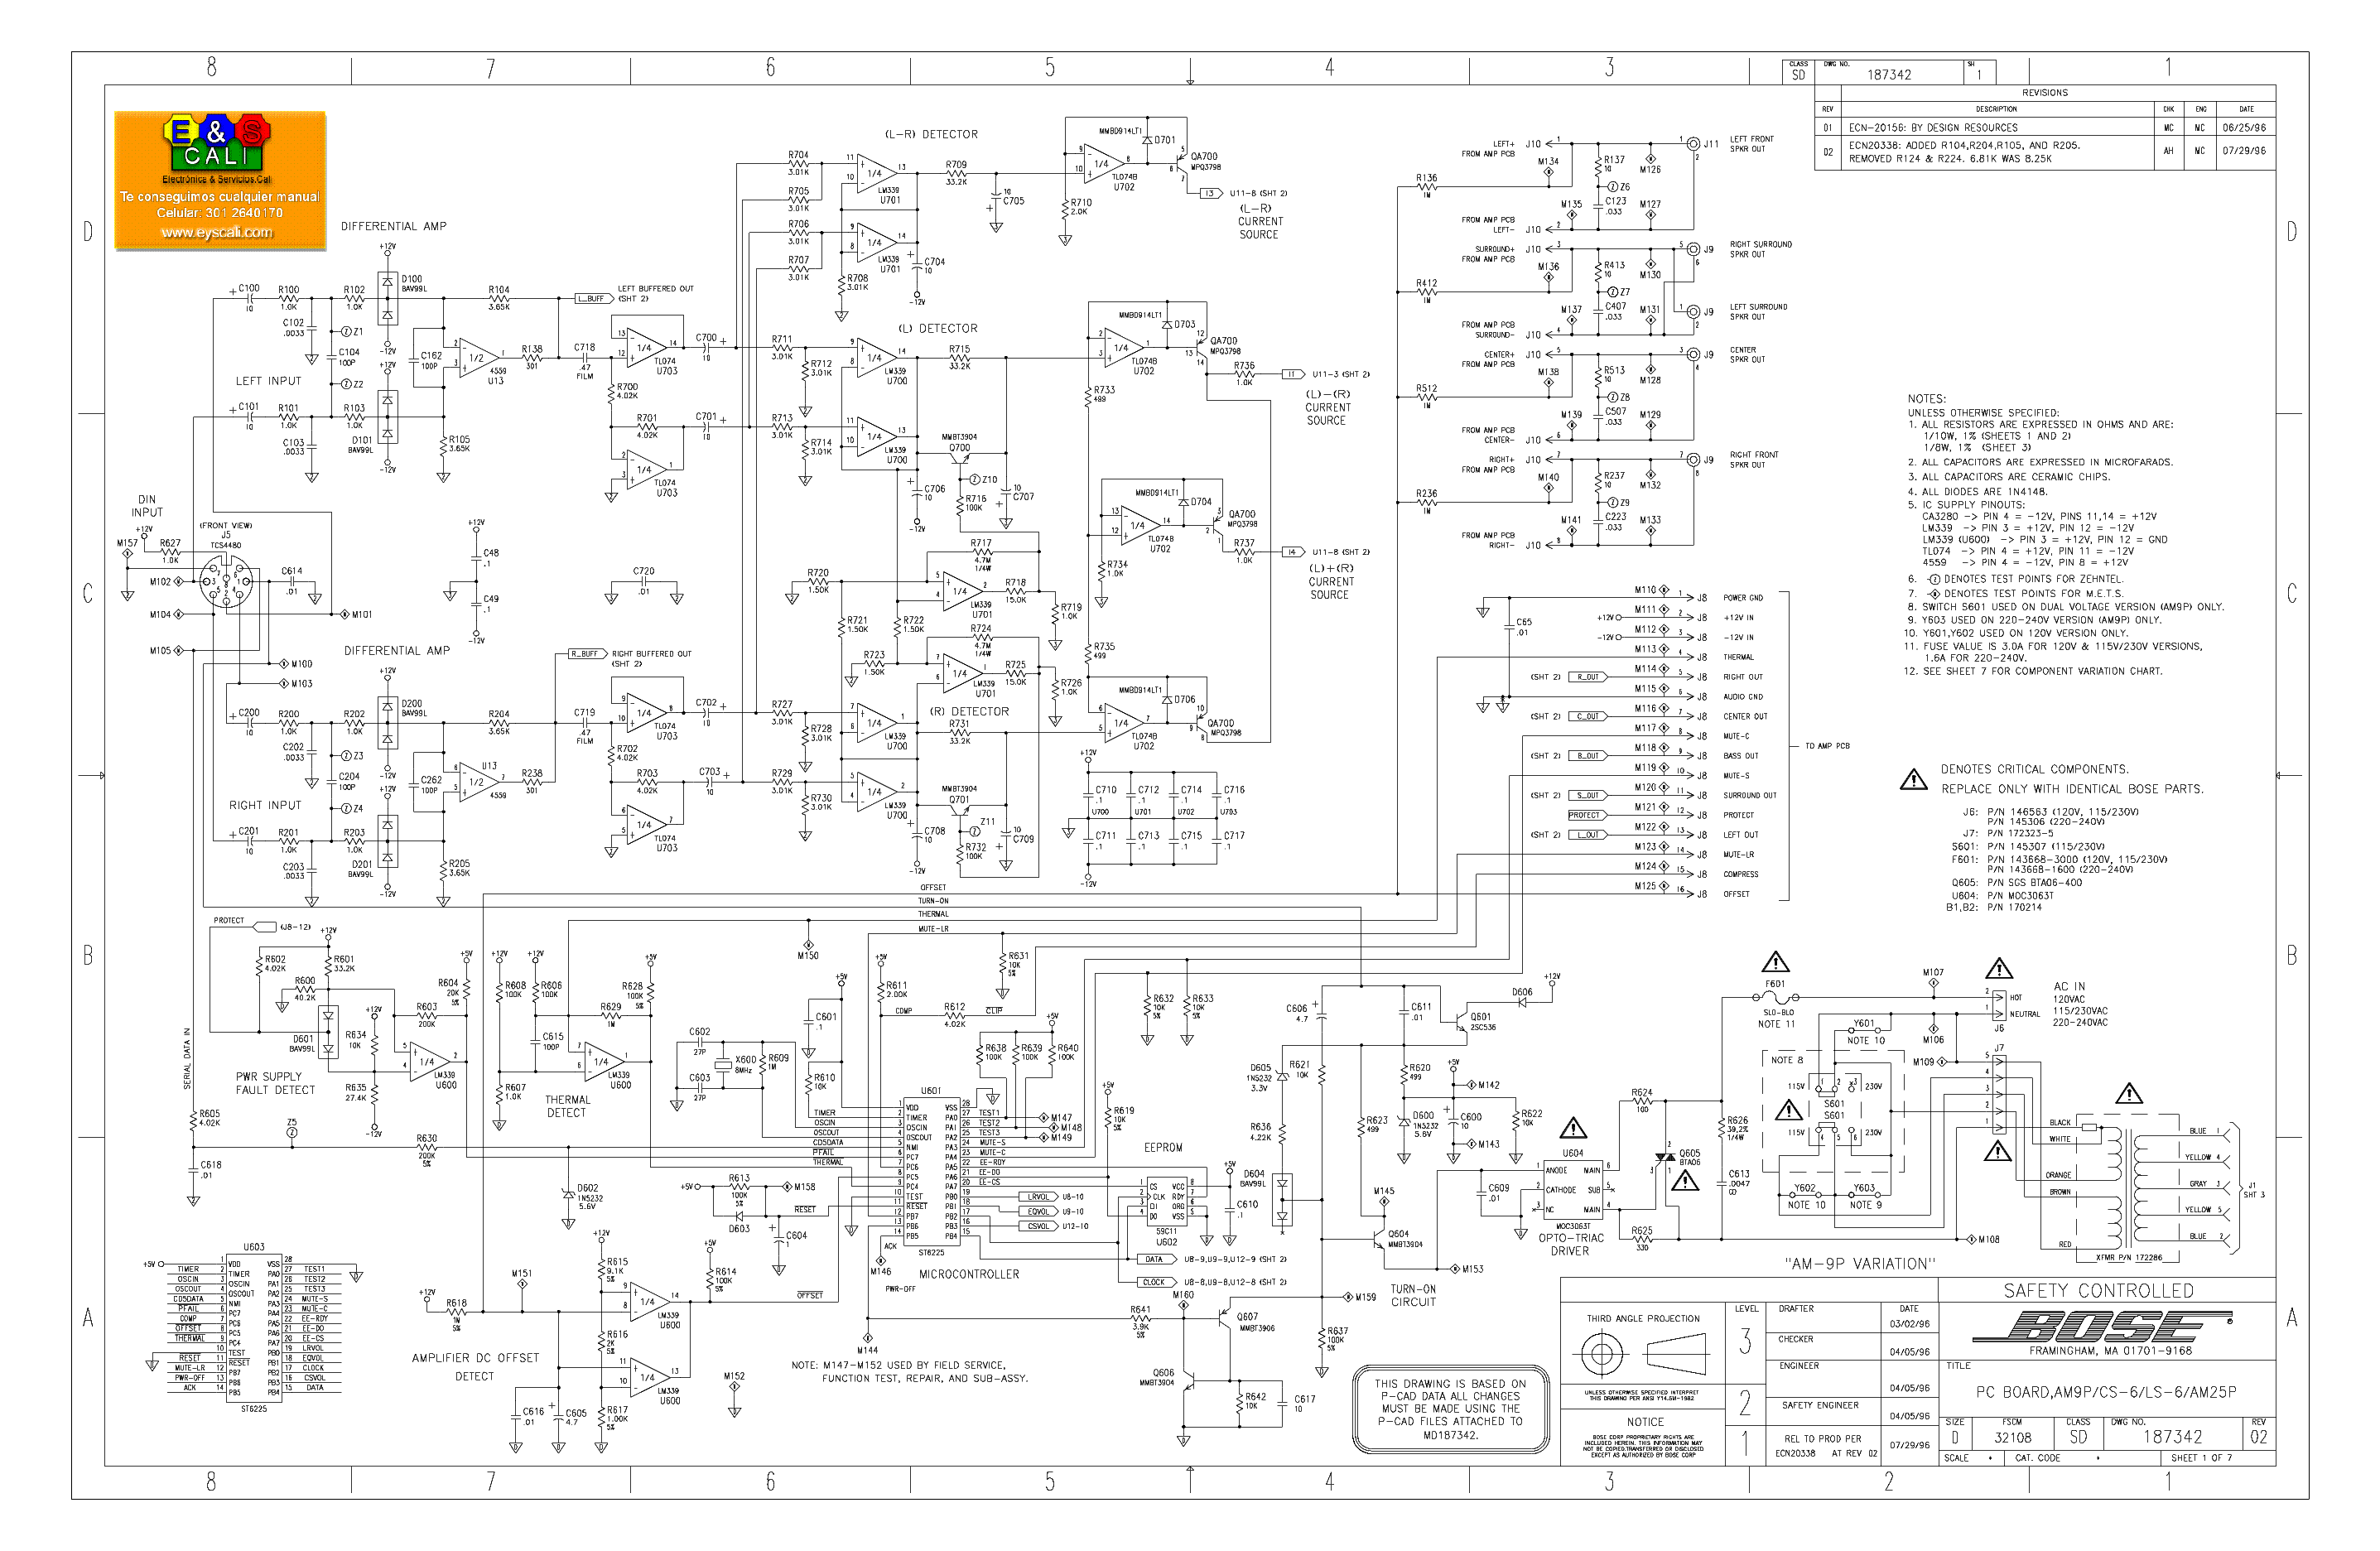 Bose 802 Speaker Wiring Diagram on wiring schematic for pioneer car stereo